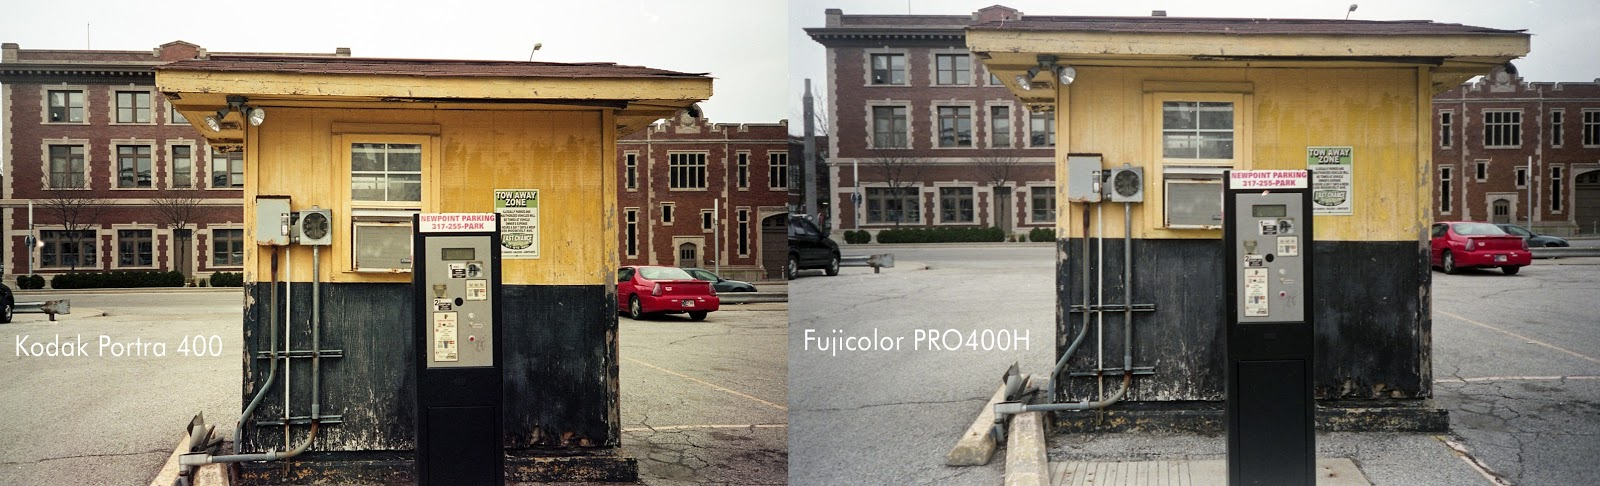 Kodak Portra 400 Side-By-Side with     - Film Photography Lust